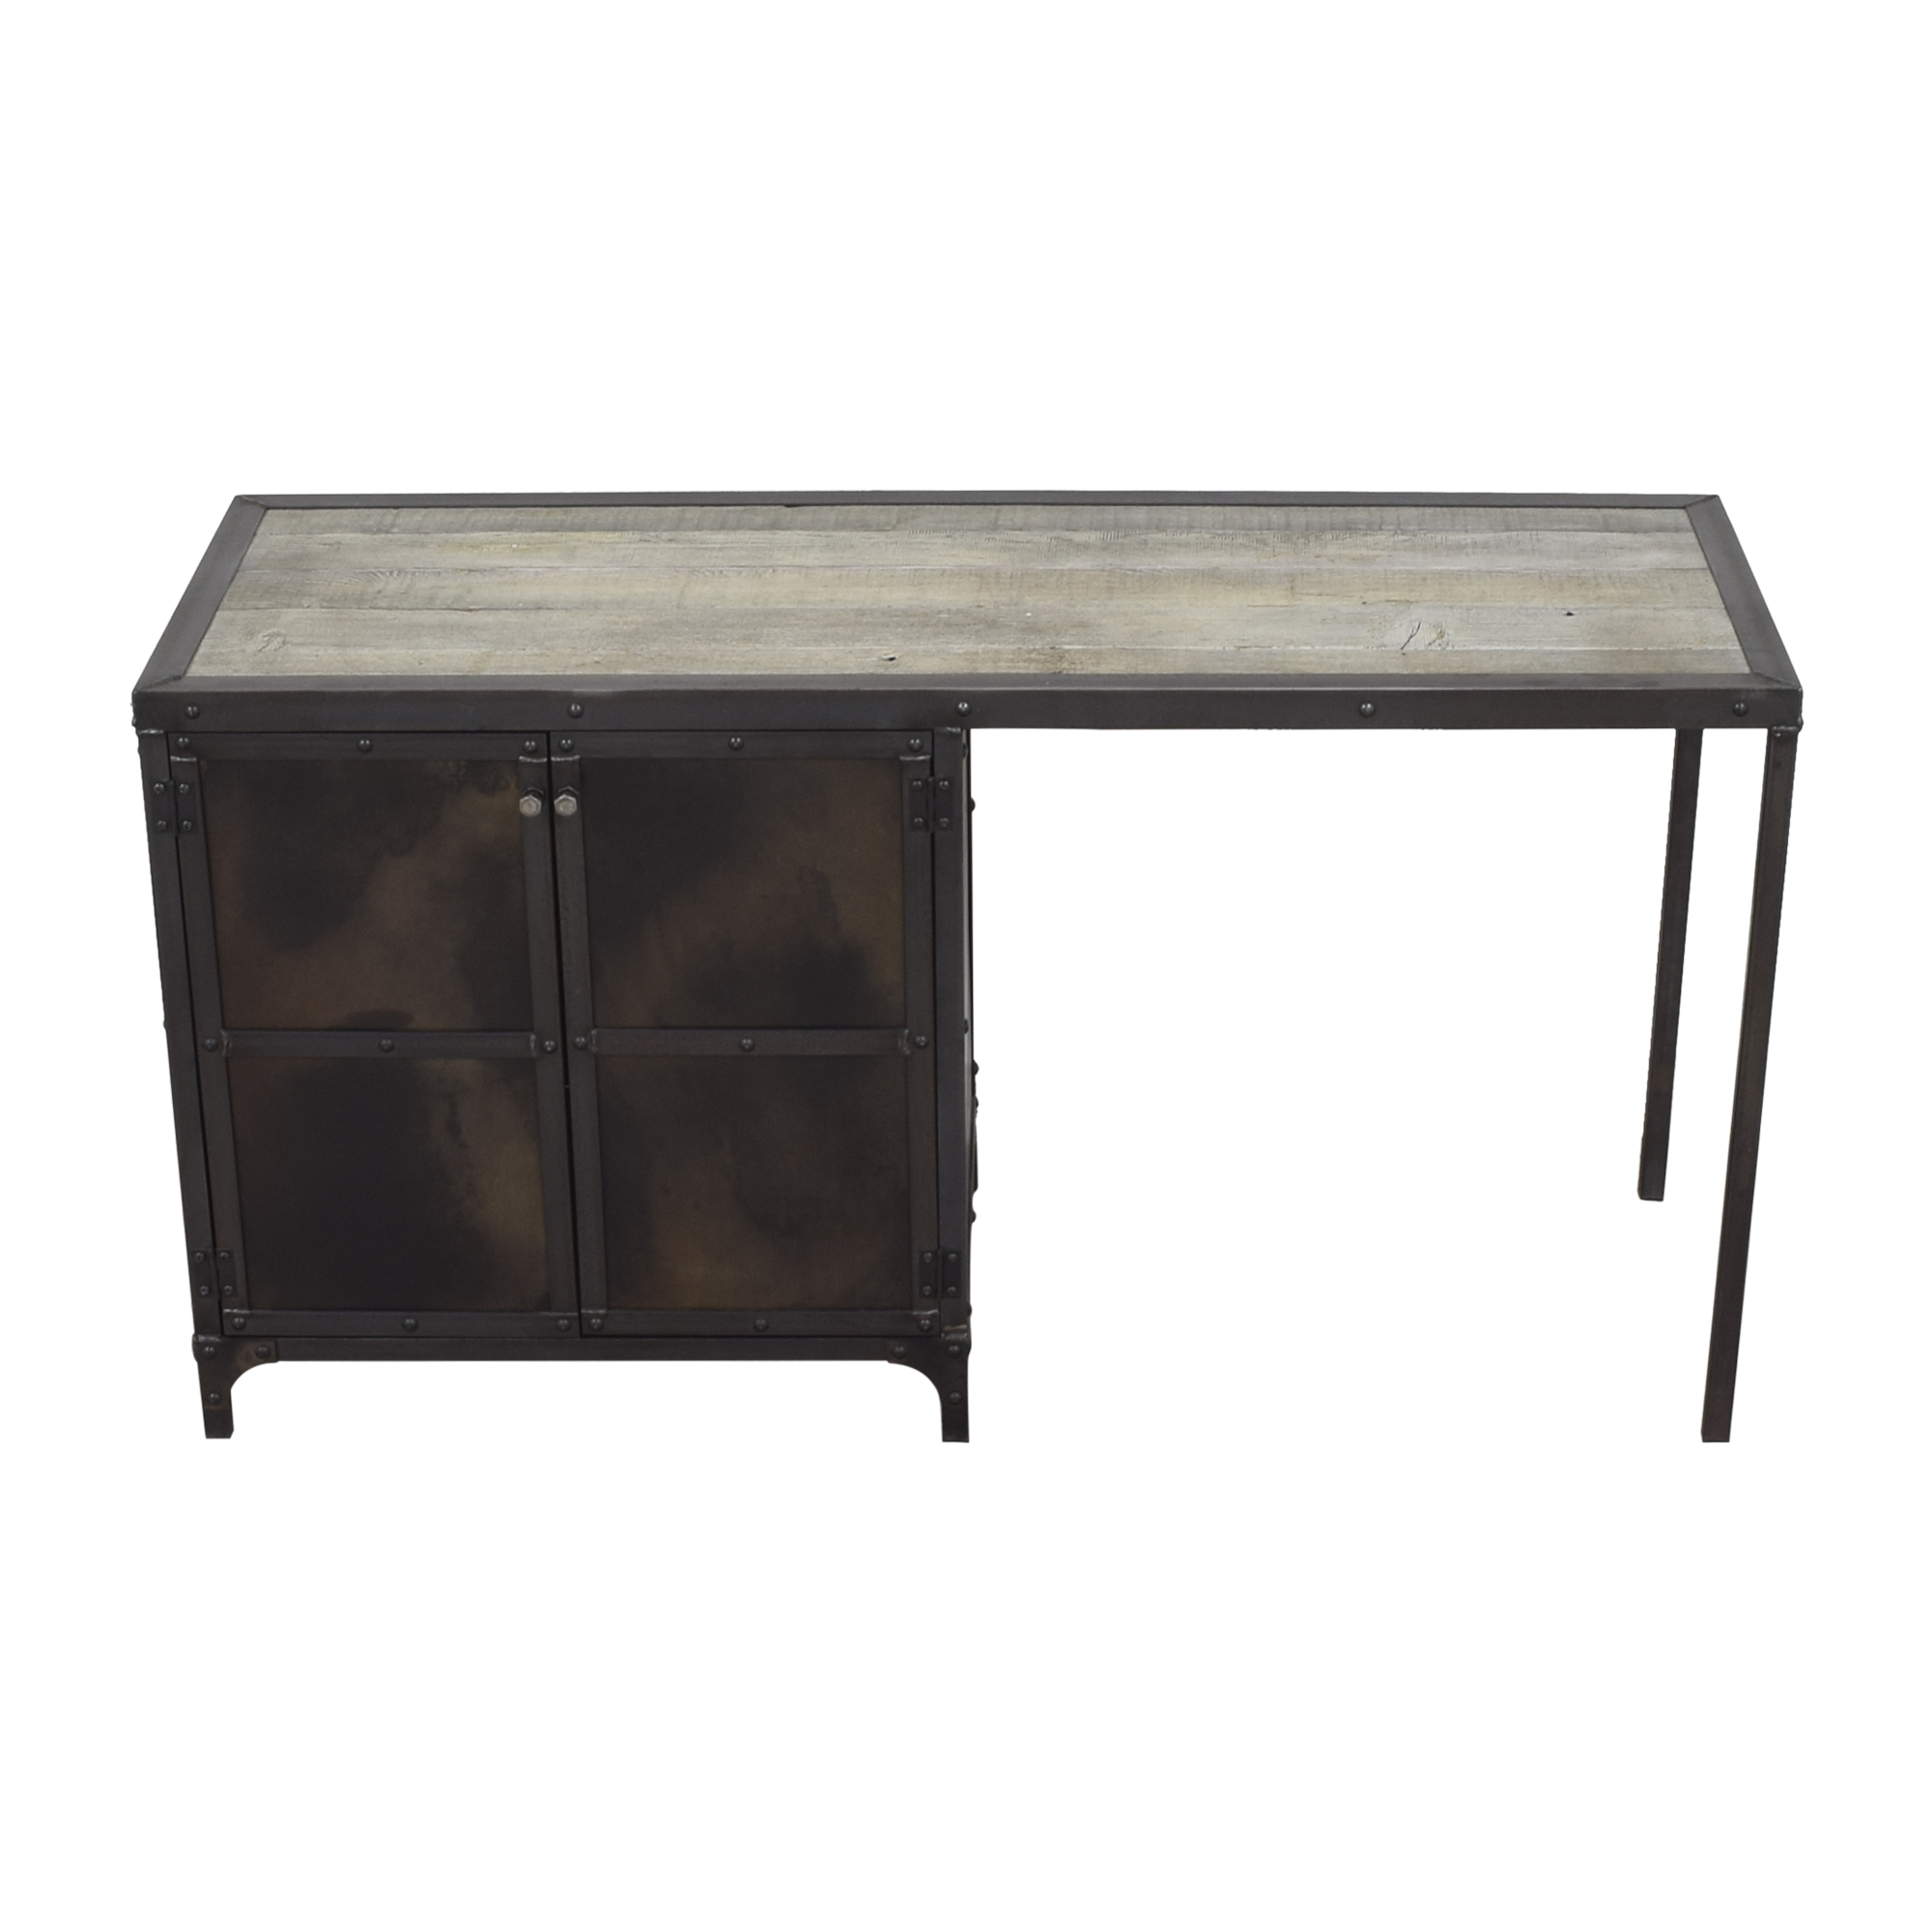 Combine 9 Industrial Desk with Side Cabinet Storage / Tables